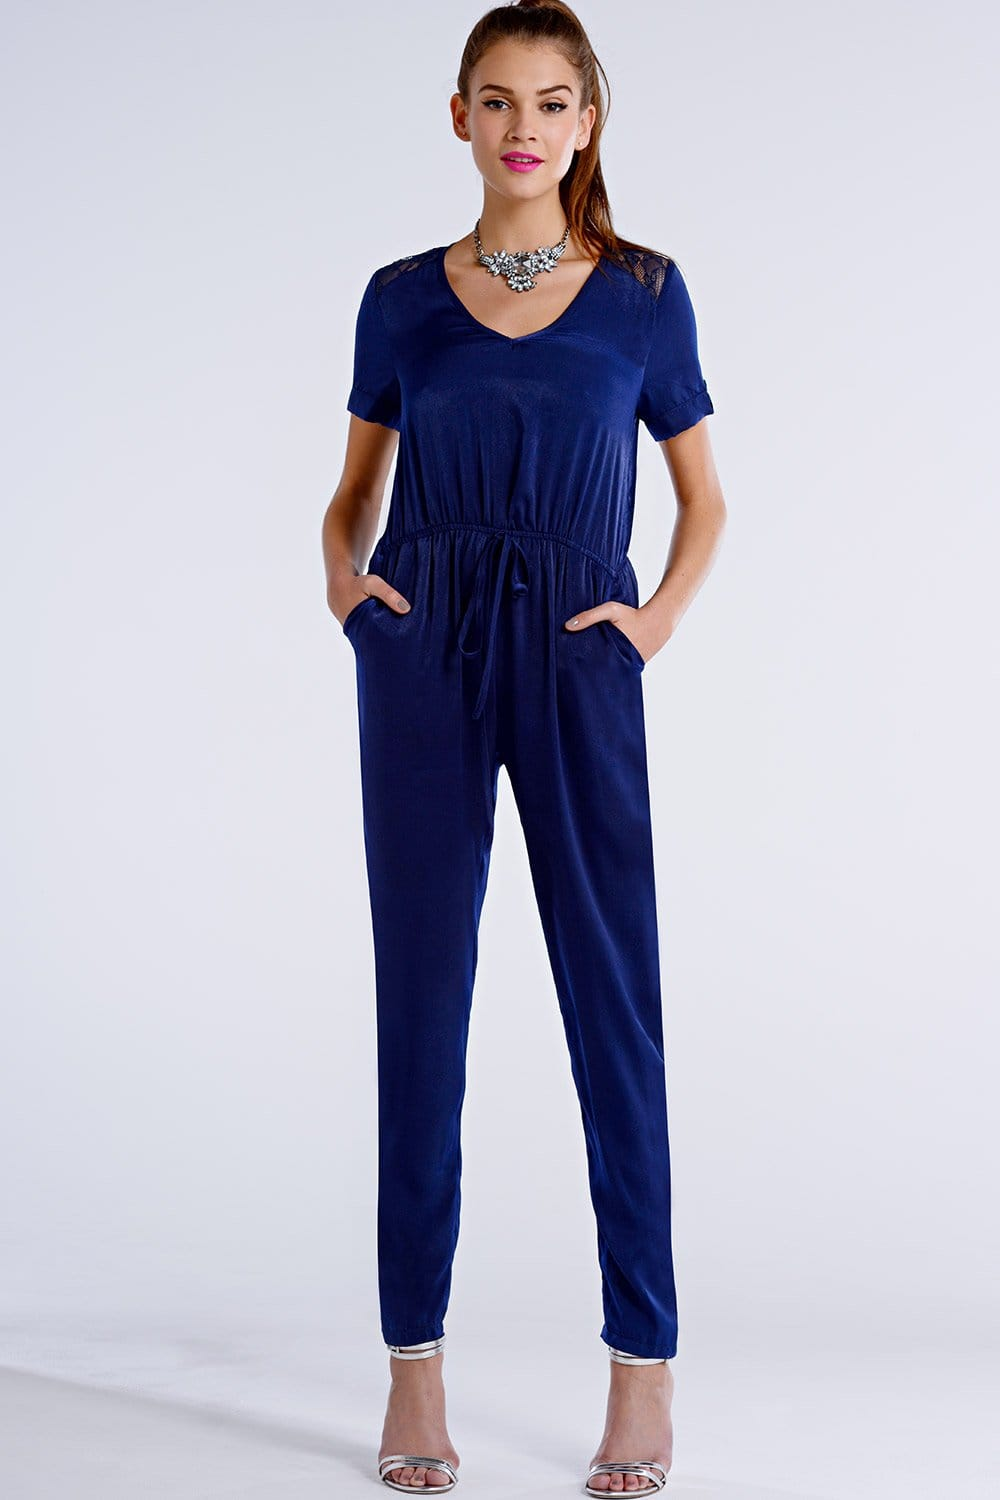 Outlet Girls On Film Navy Satin Drawstring Lace Insert Jumpsuit - Outlet Girls On Film From ...